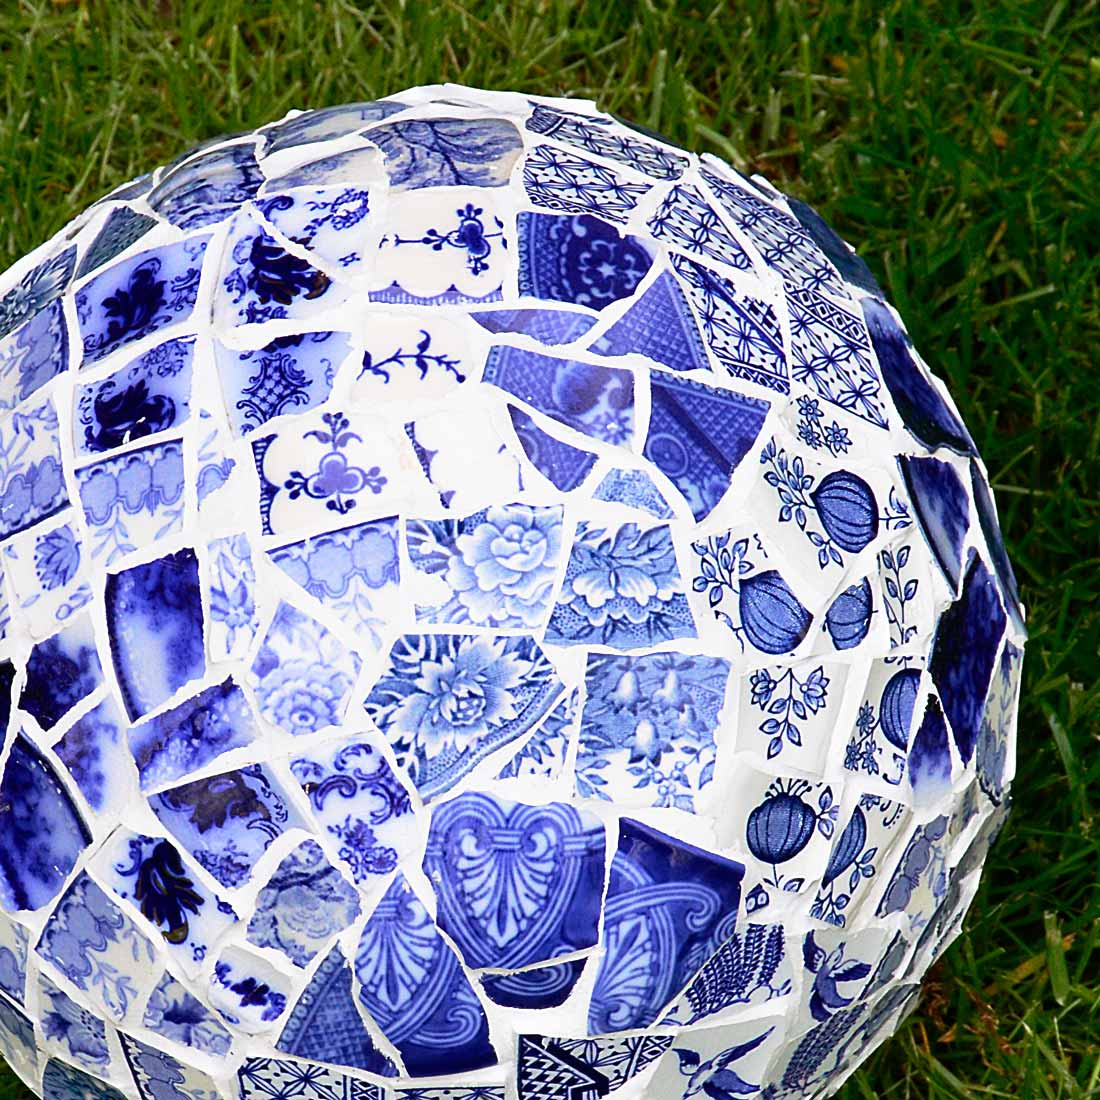 Mosaic bowling ball garden art orb by Selep Imaging, featured on DIY Salvaged Junk Projects 534 on Funky Junk!